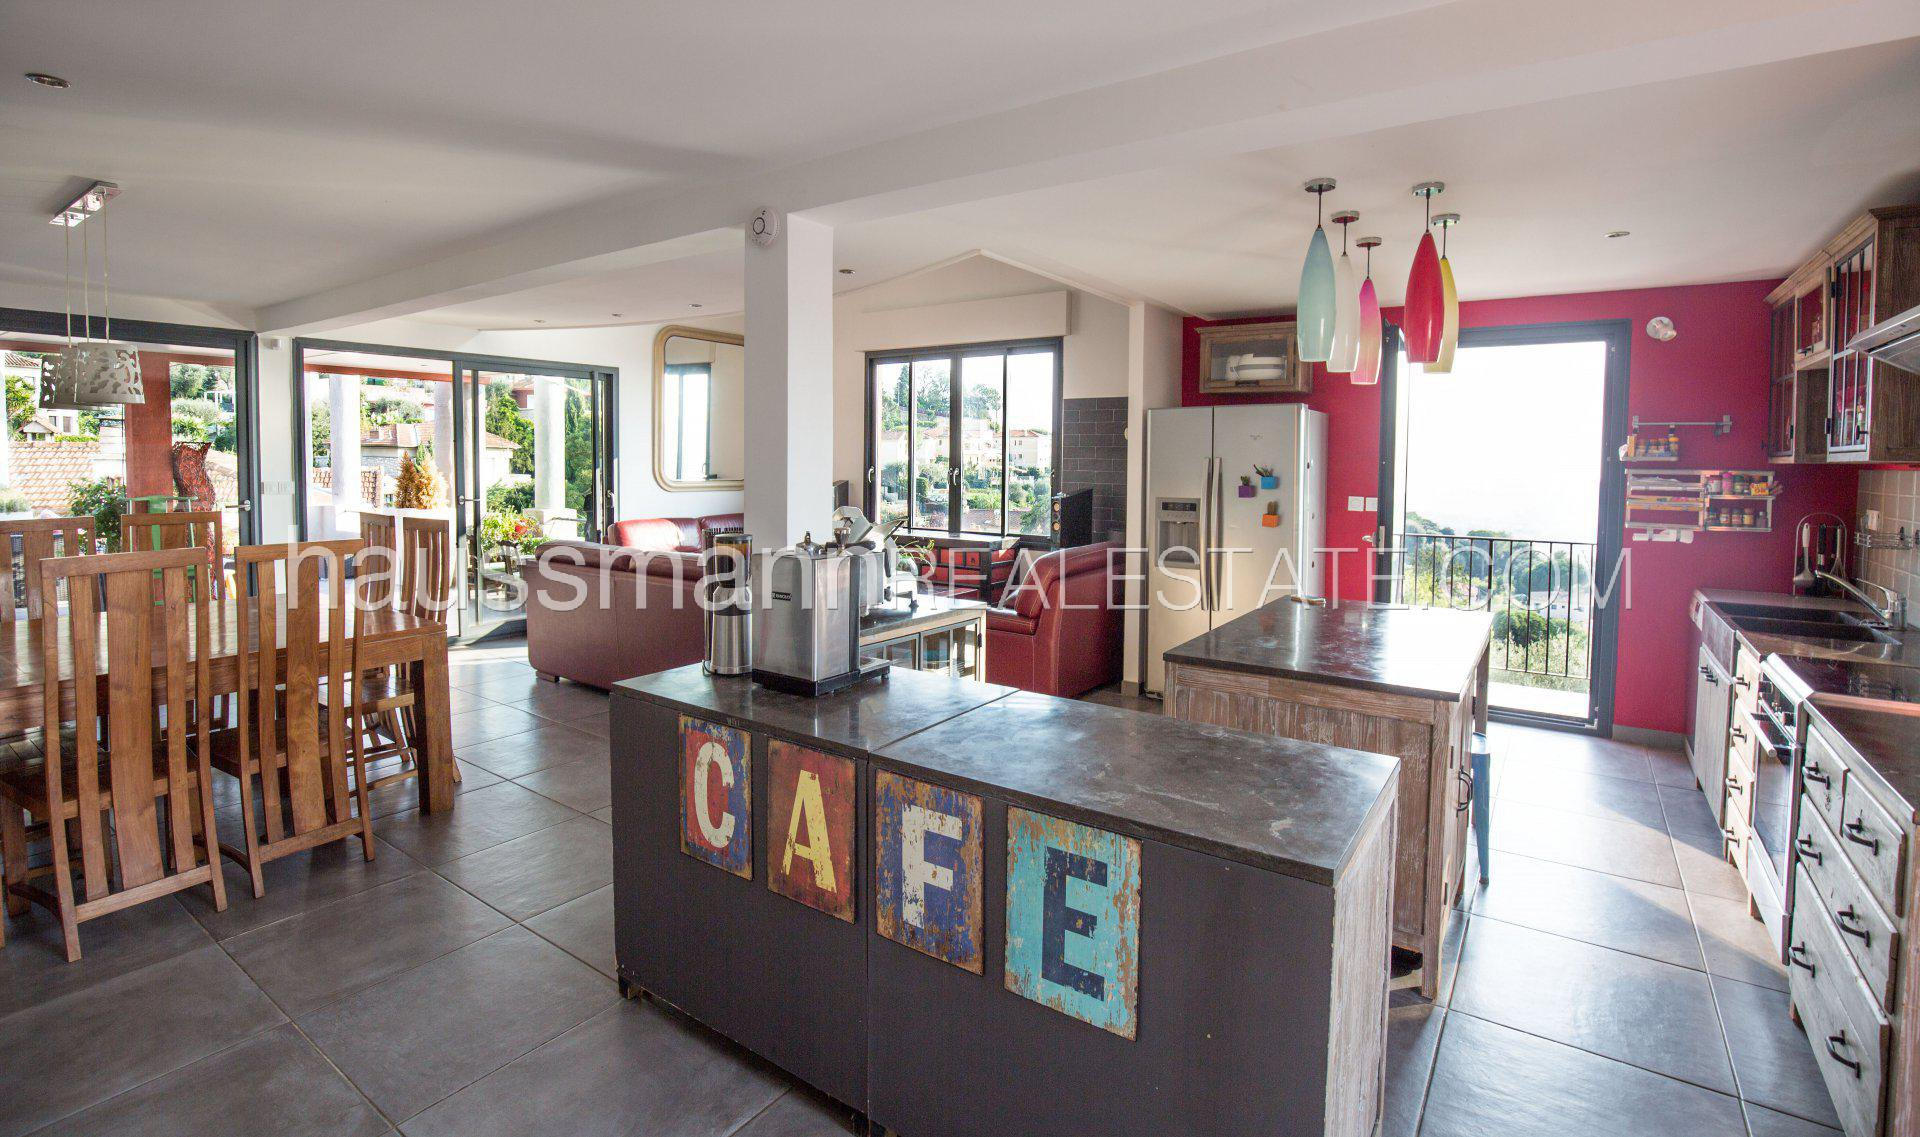 Buying Villa Nice 1930's Riviera style house overlooking the bay of Nice